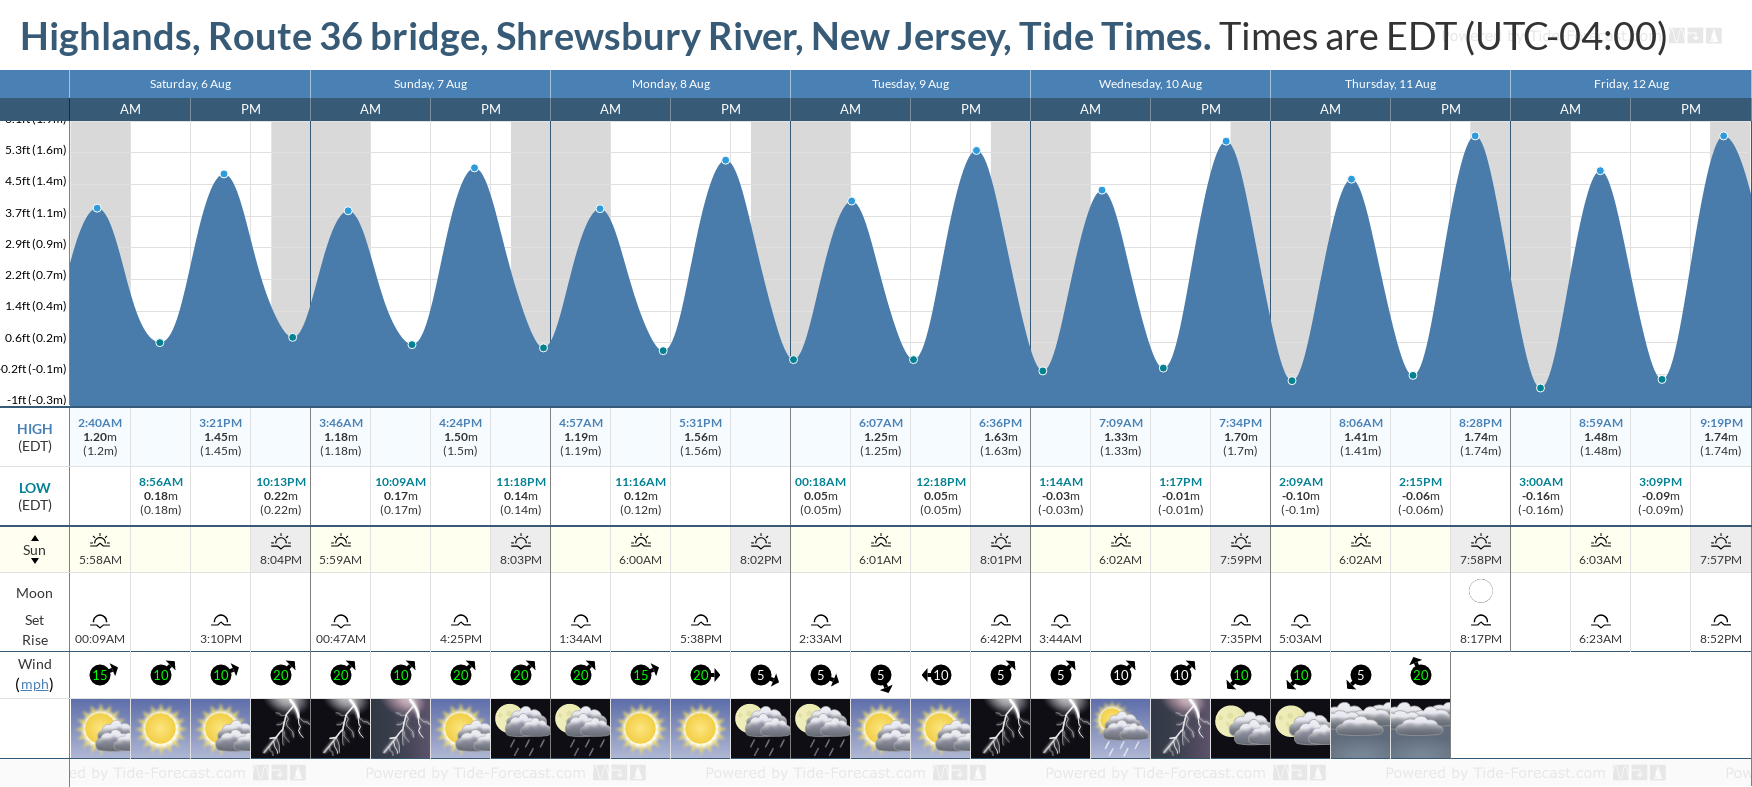 Highlands, Route 36 bridge, Shrewsbury River, New Jersey Tide Chart including high and low tide tide times for the next 7 days